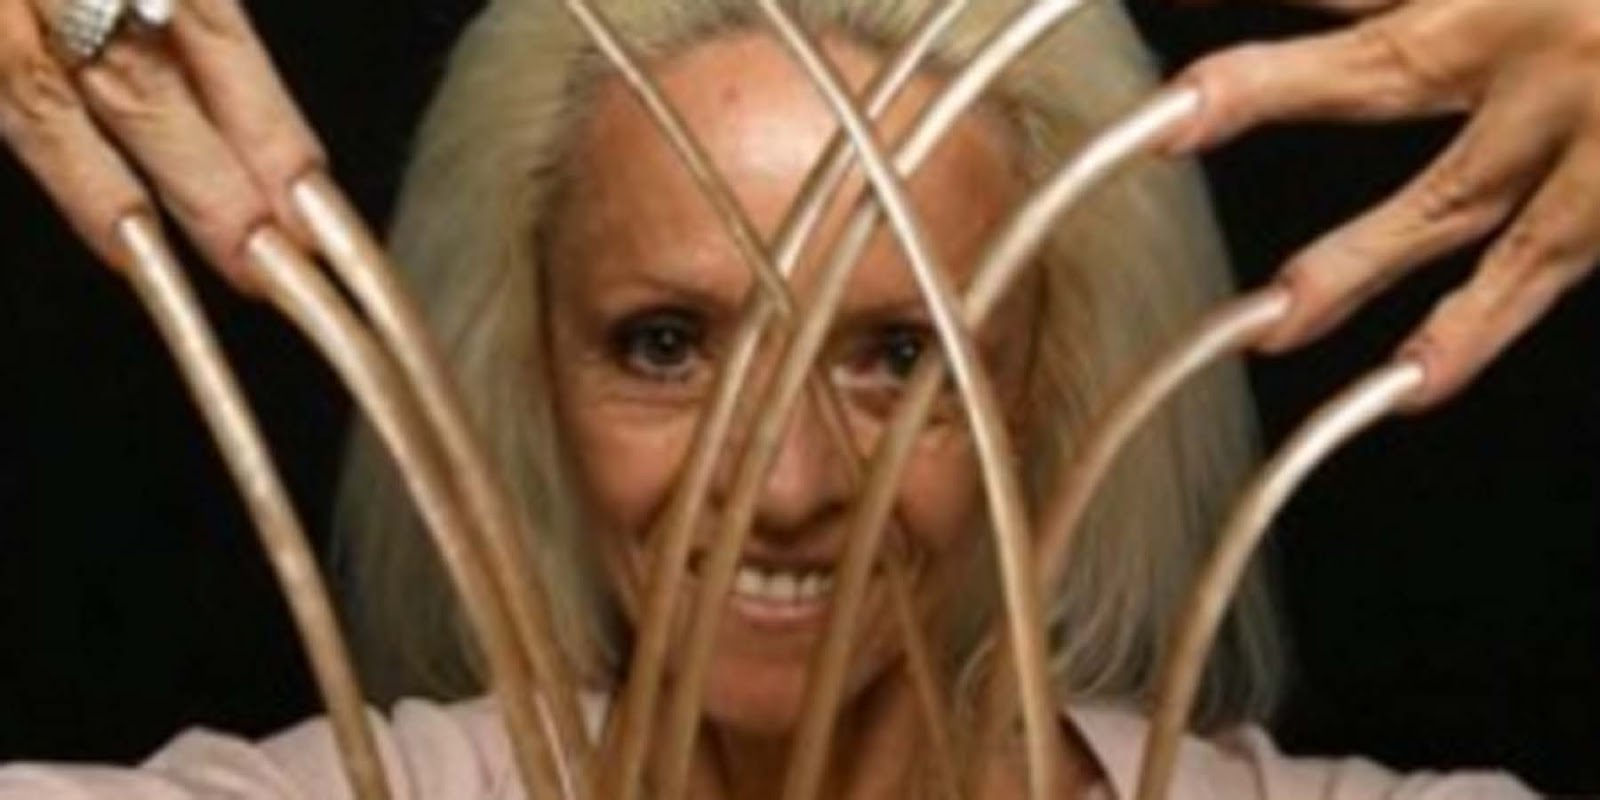 American woman used to have the longest fingernails in the world ...